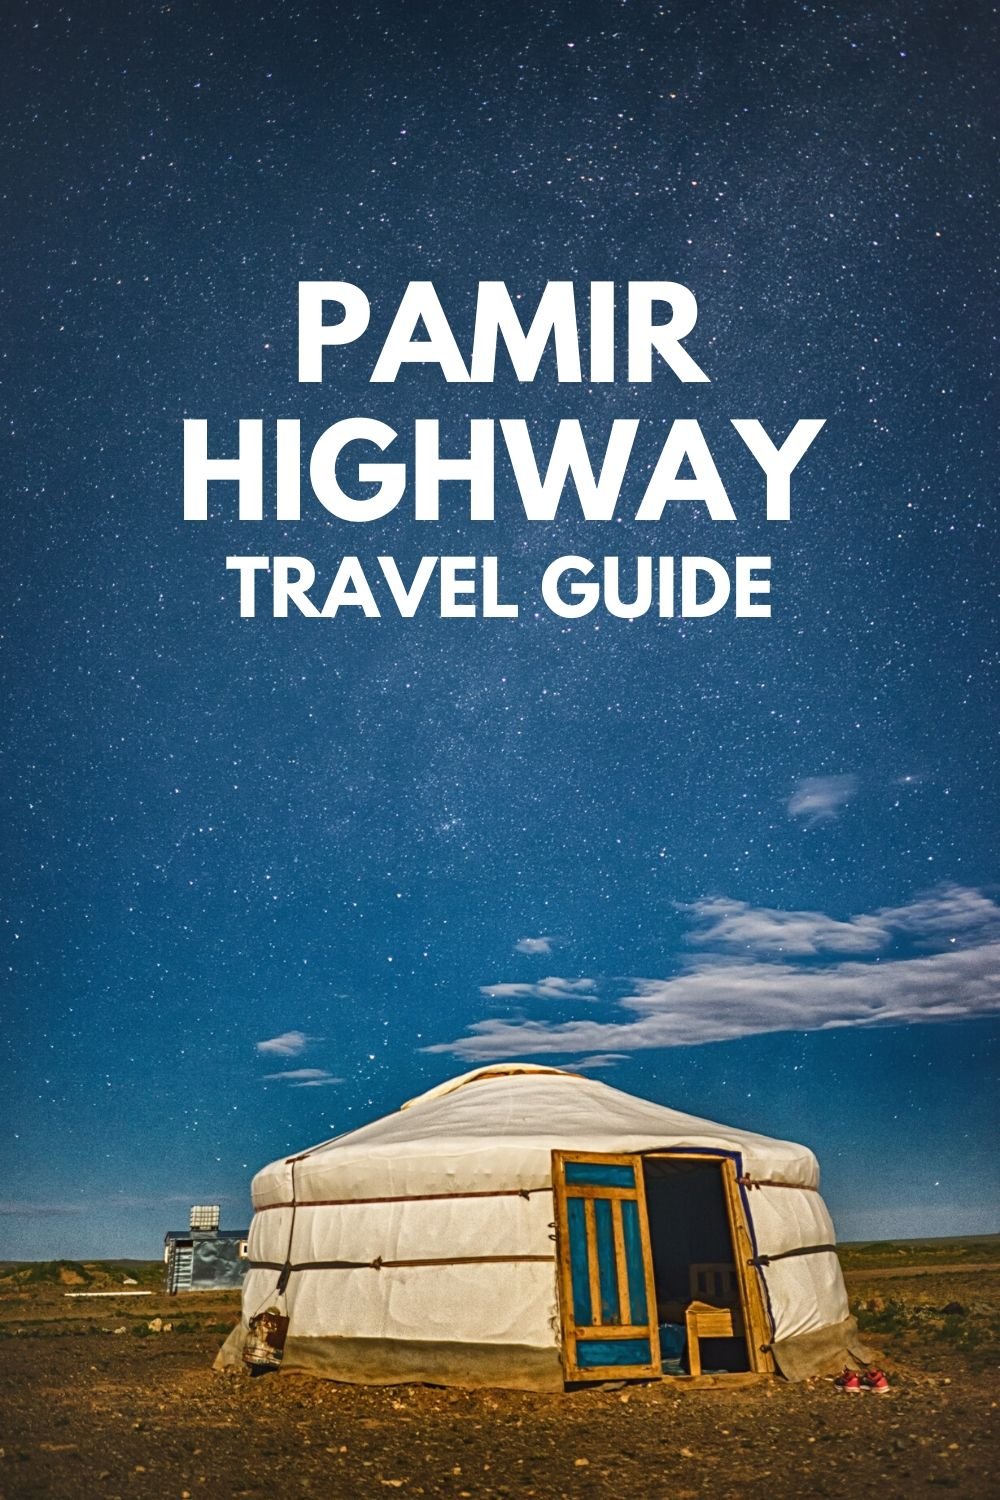 Pamir Highway Travel Guide